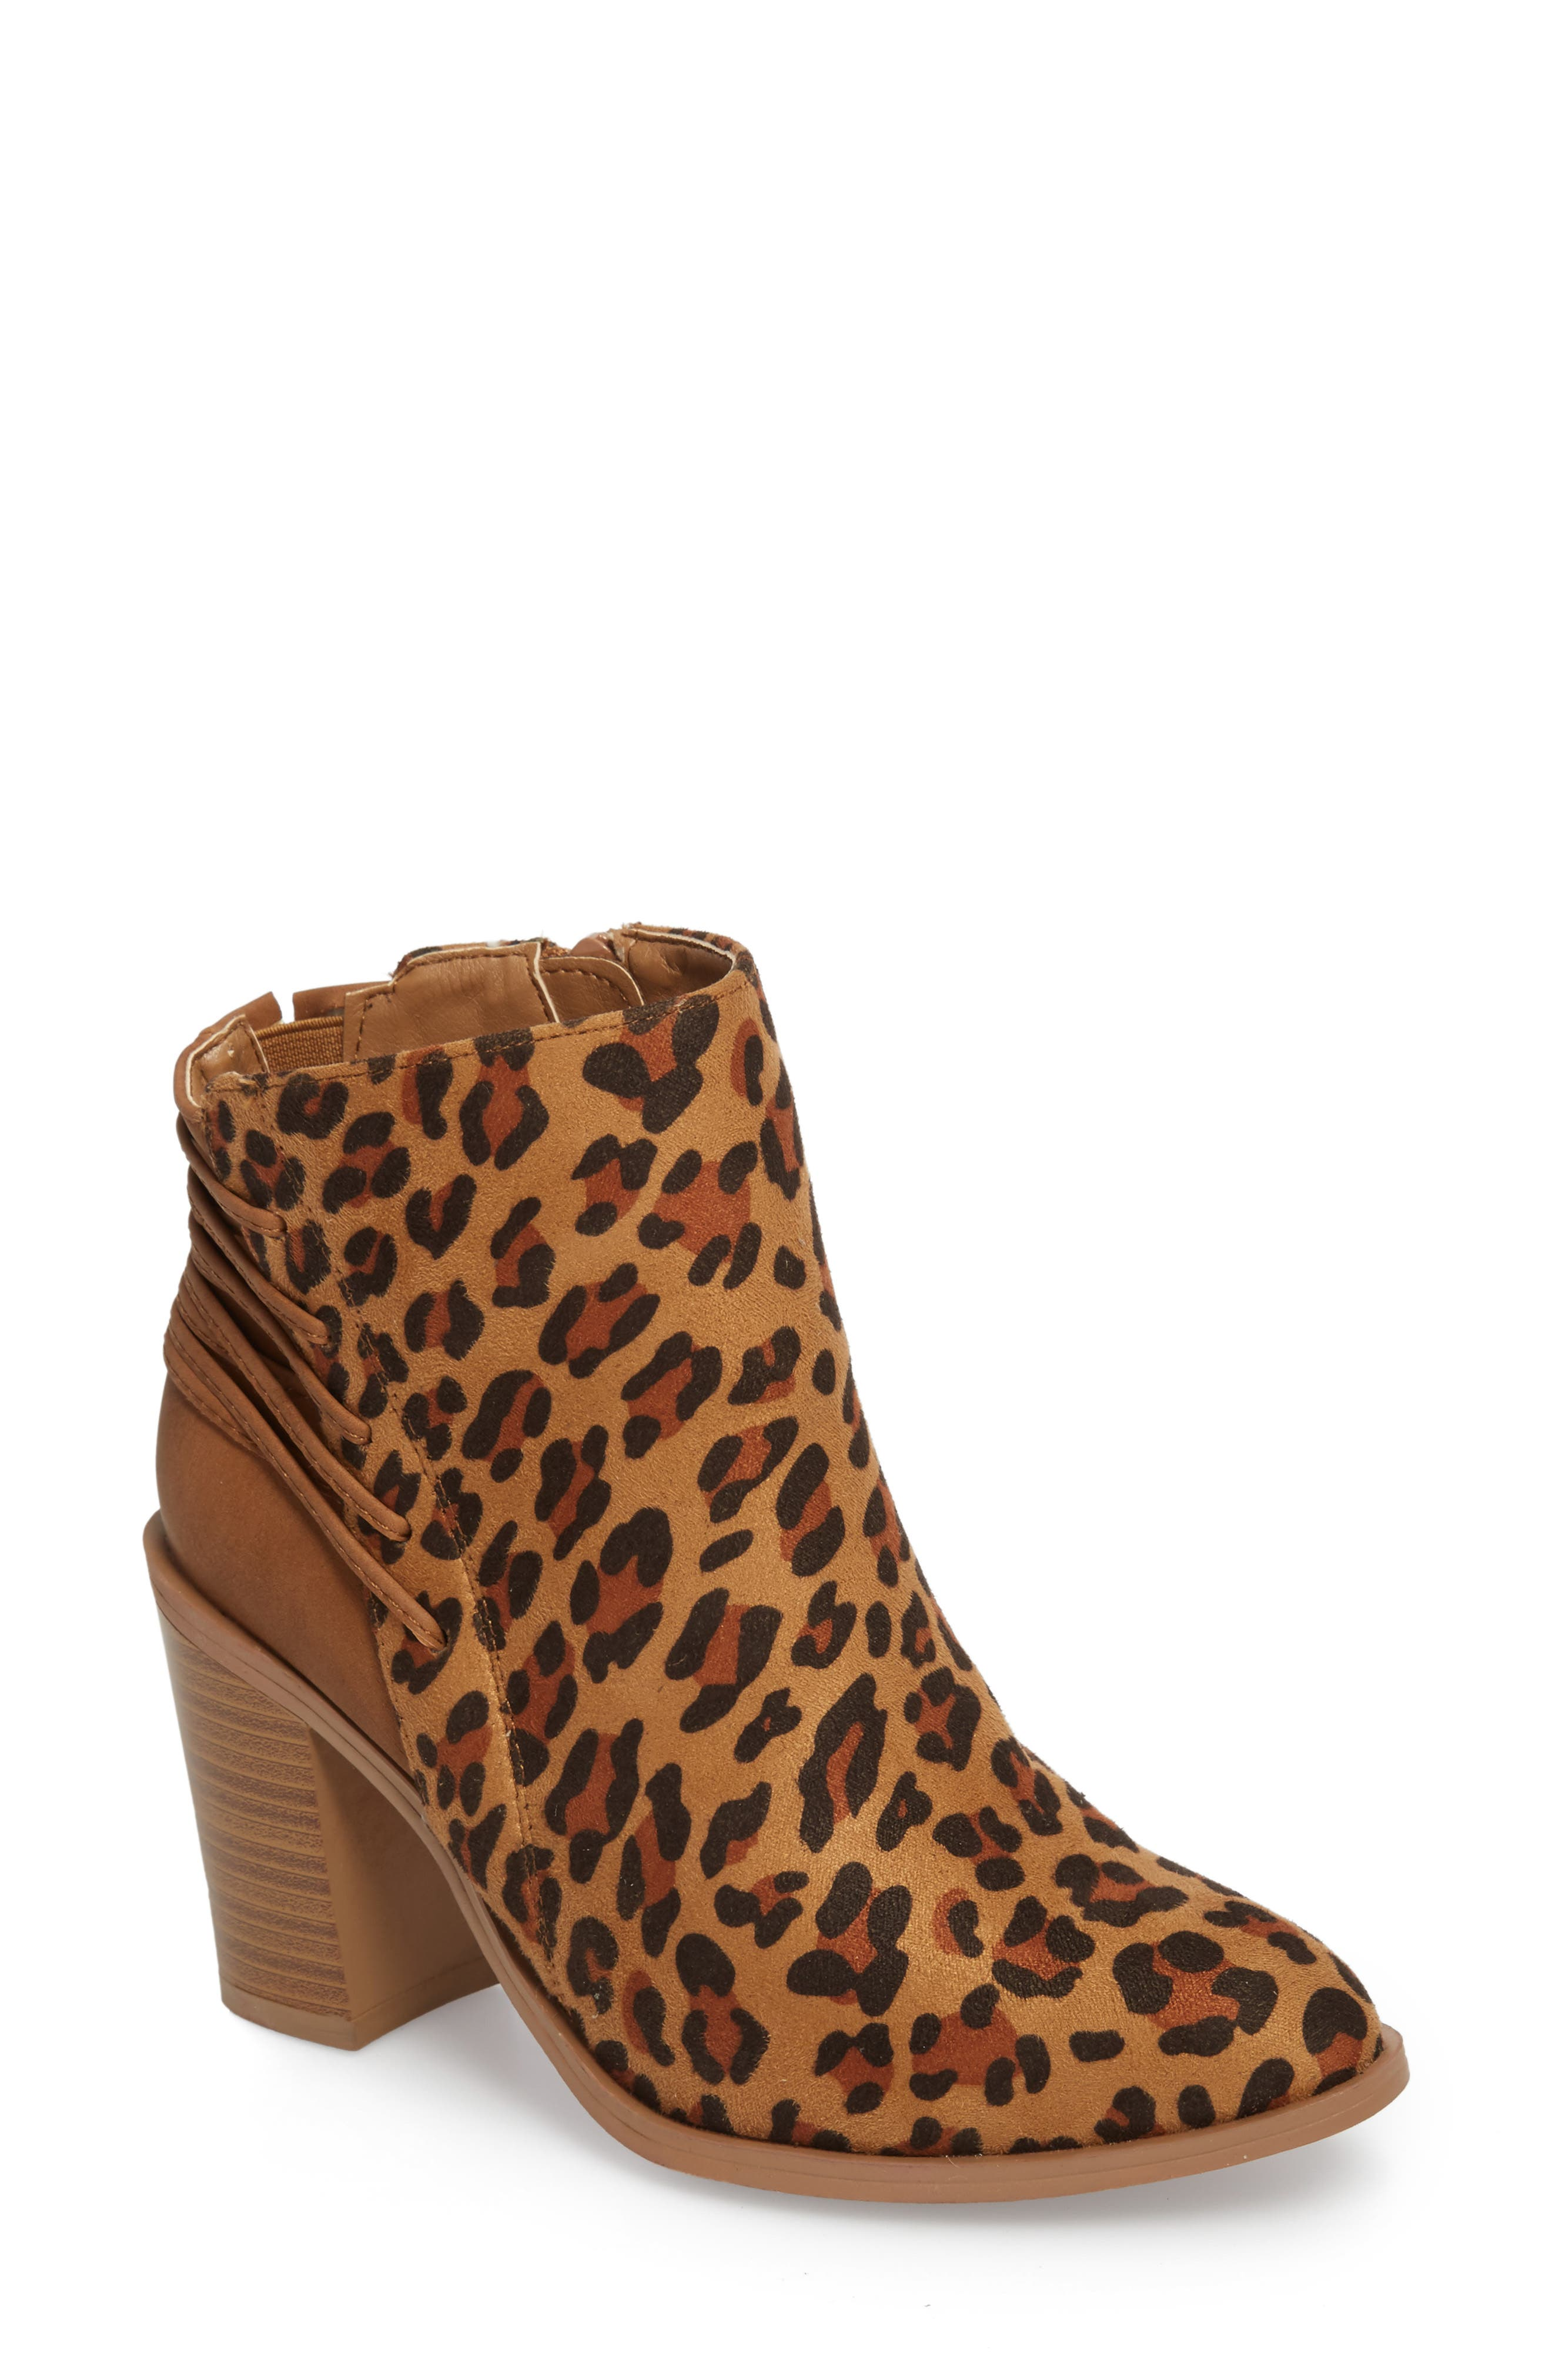 Lacey Leopard Bootie,                             Main thumbnail 1, color,                             Tan Leopard Suede Leather